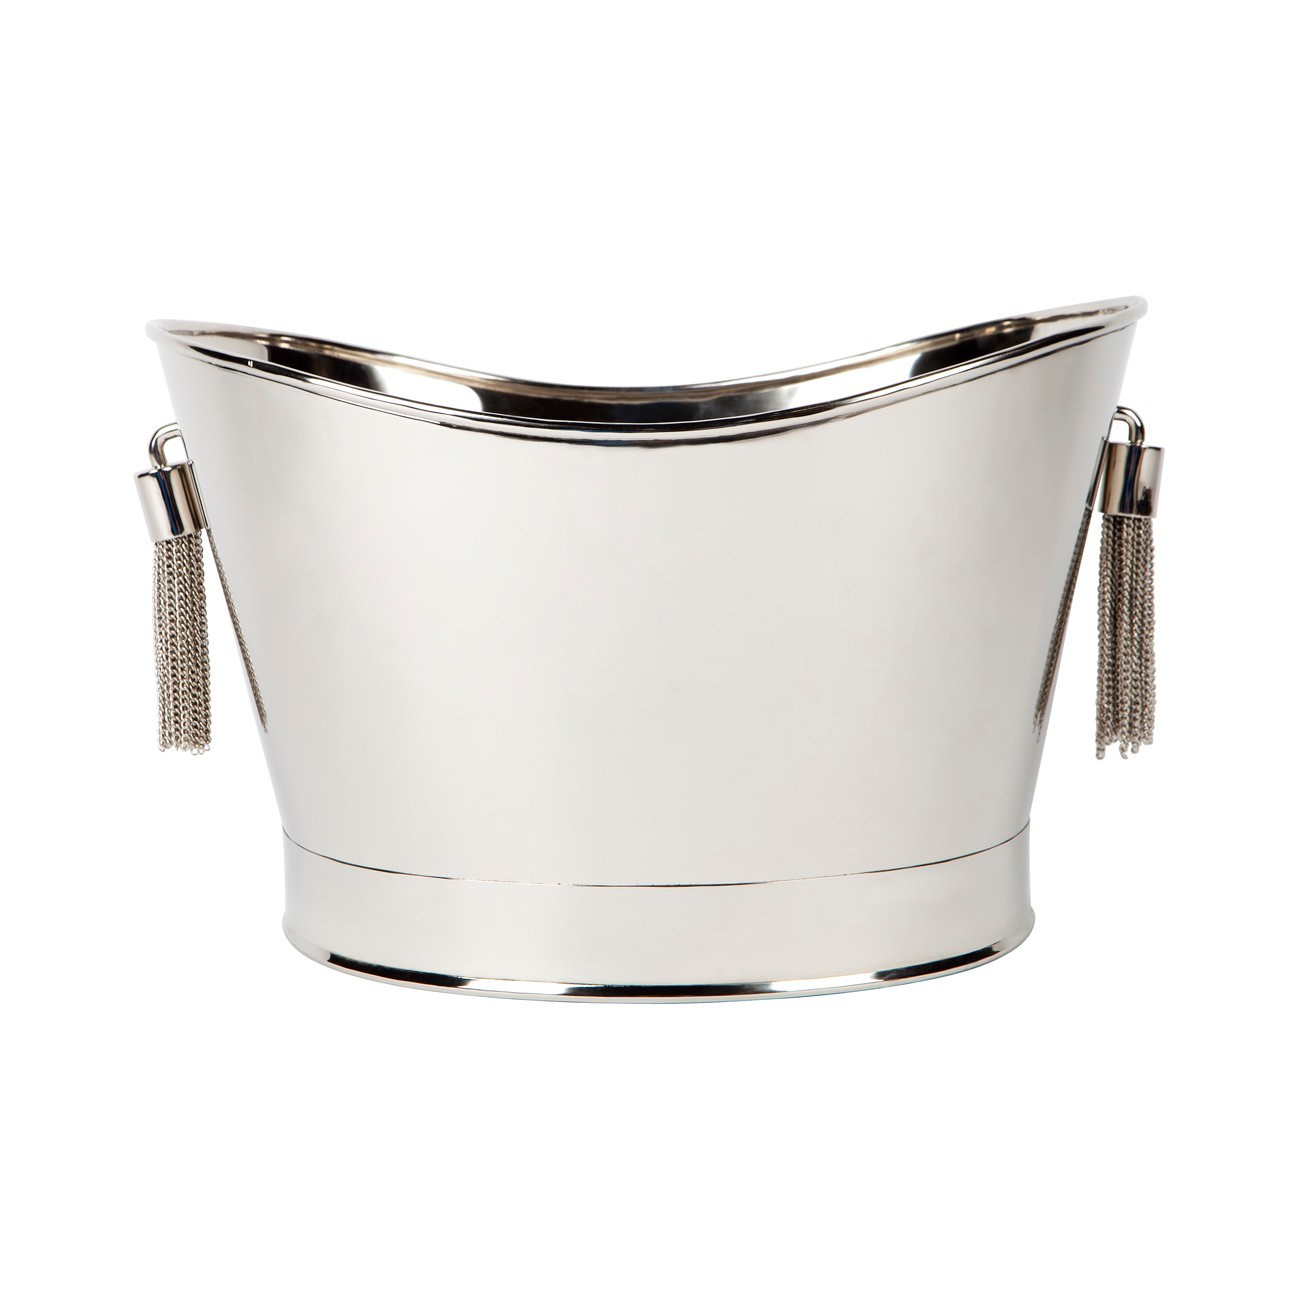 Tassell Stainless Steel Champagne Bucket, Silver